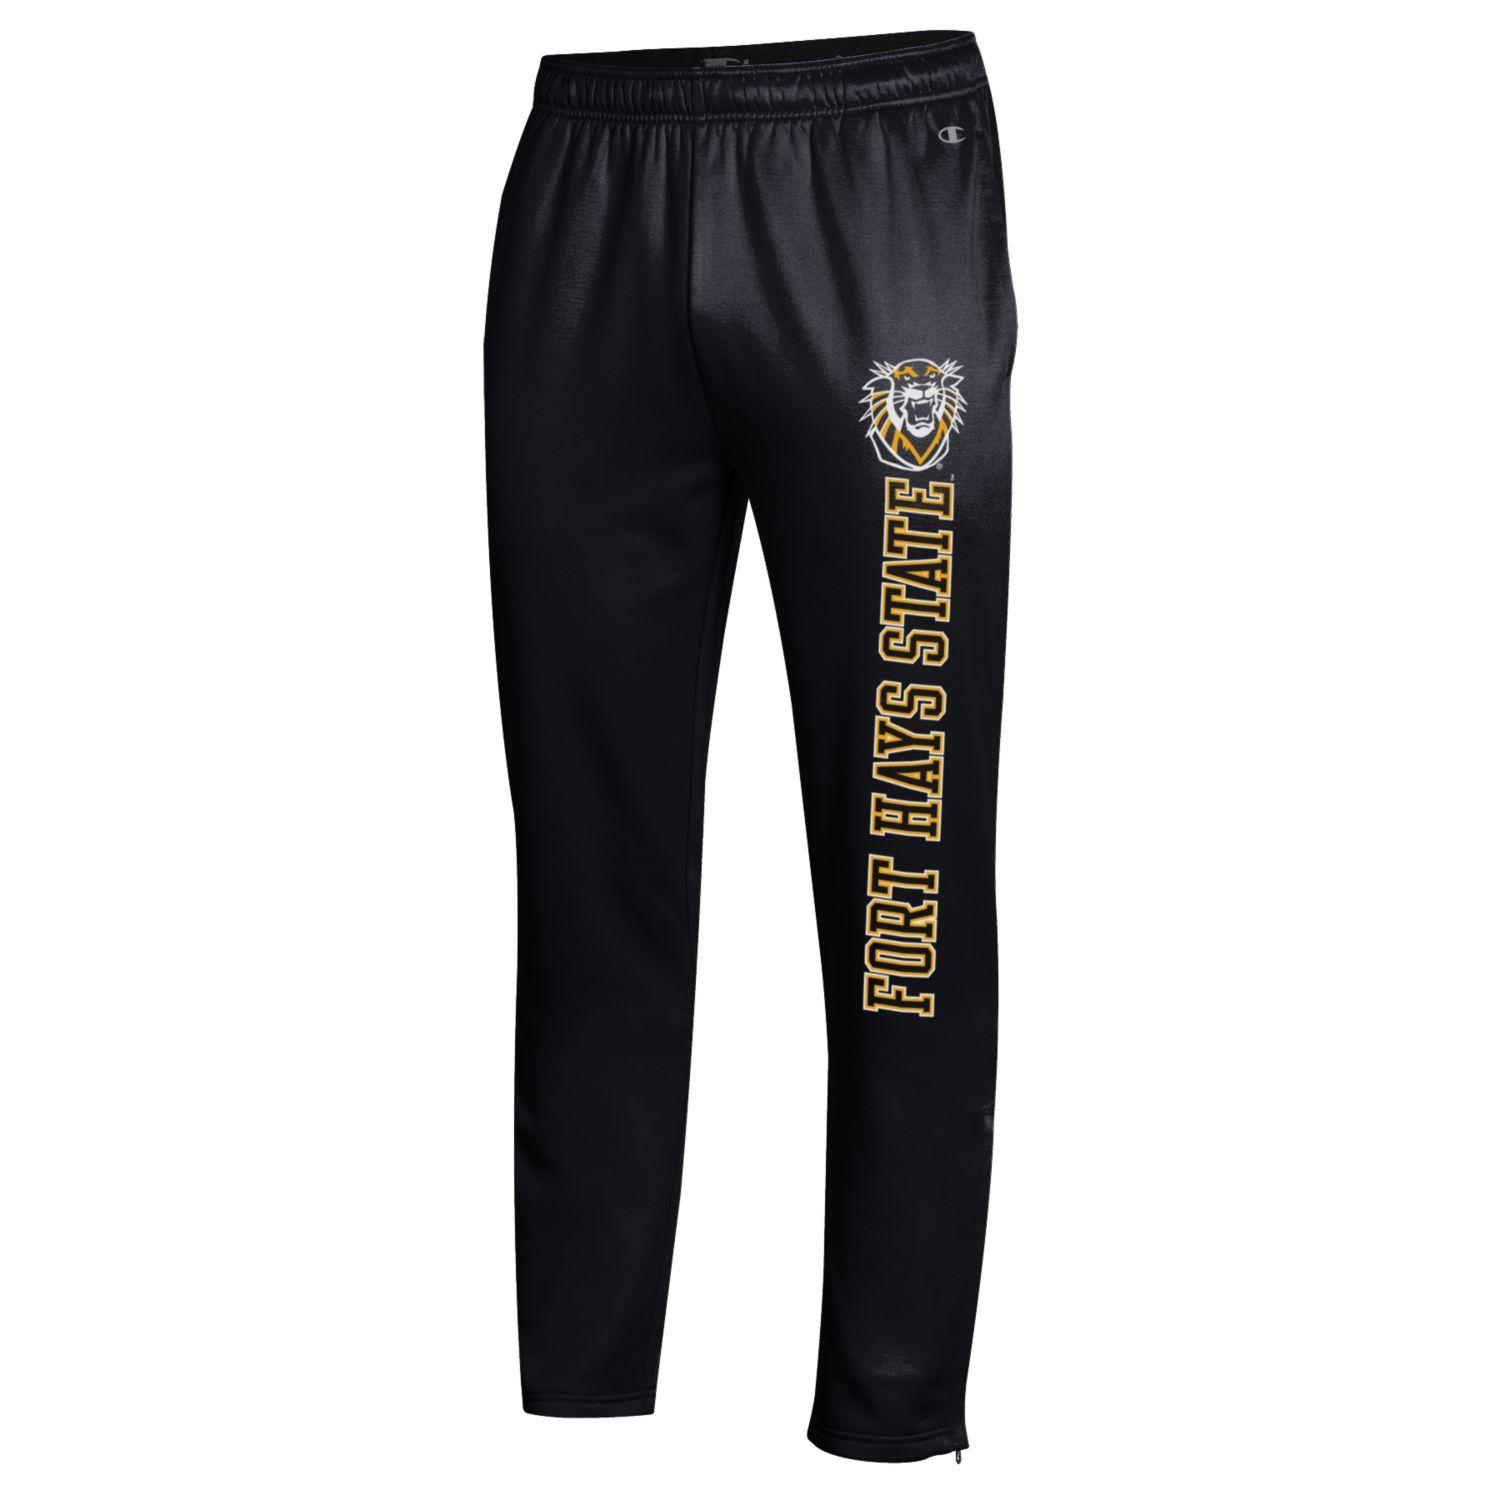 Image for the Unisex Field Day Fleece Pant, Black, Champion product